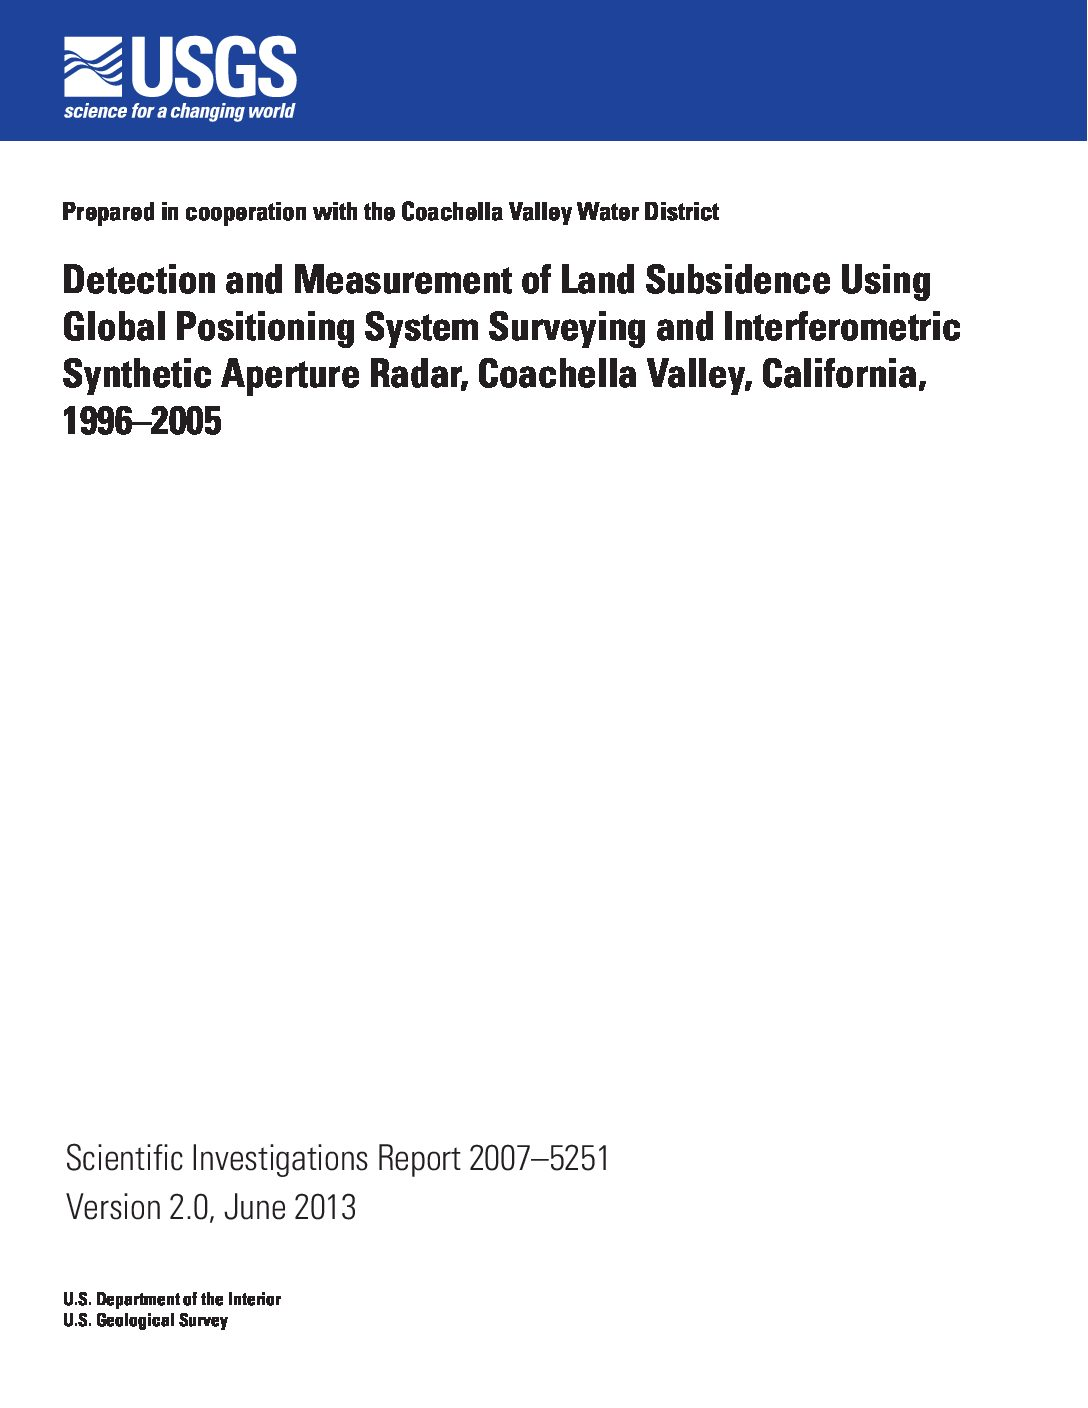 Detection and Measurement of Land Subsidence Using Global